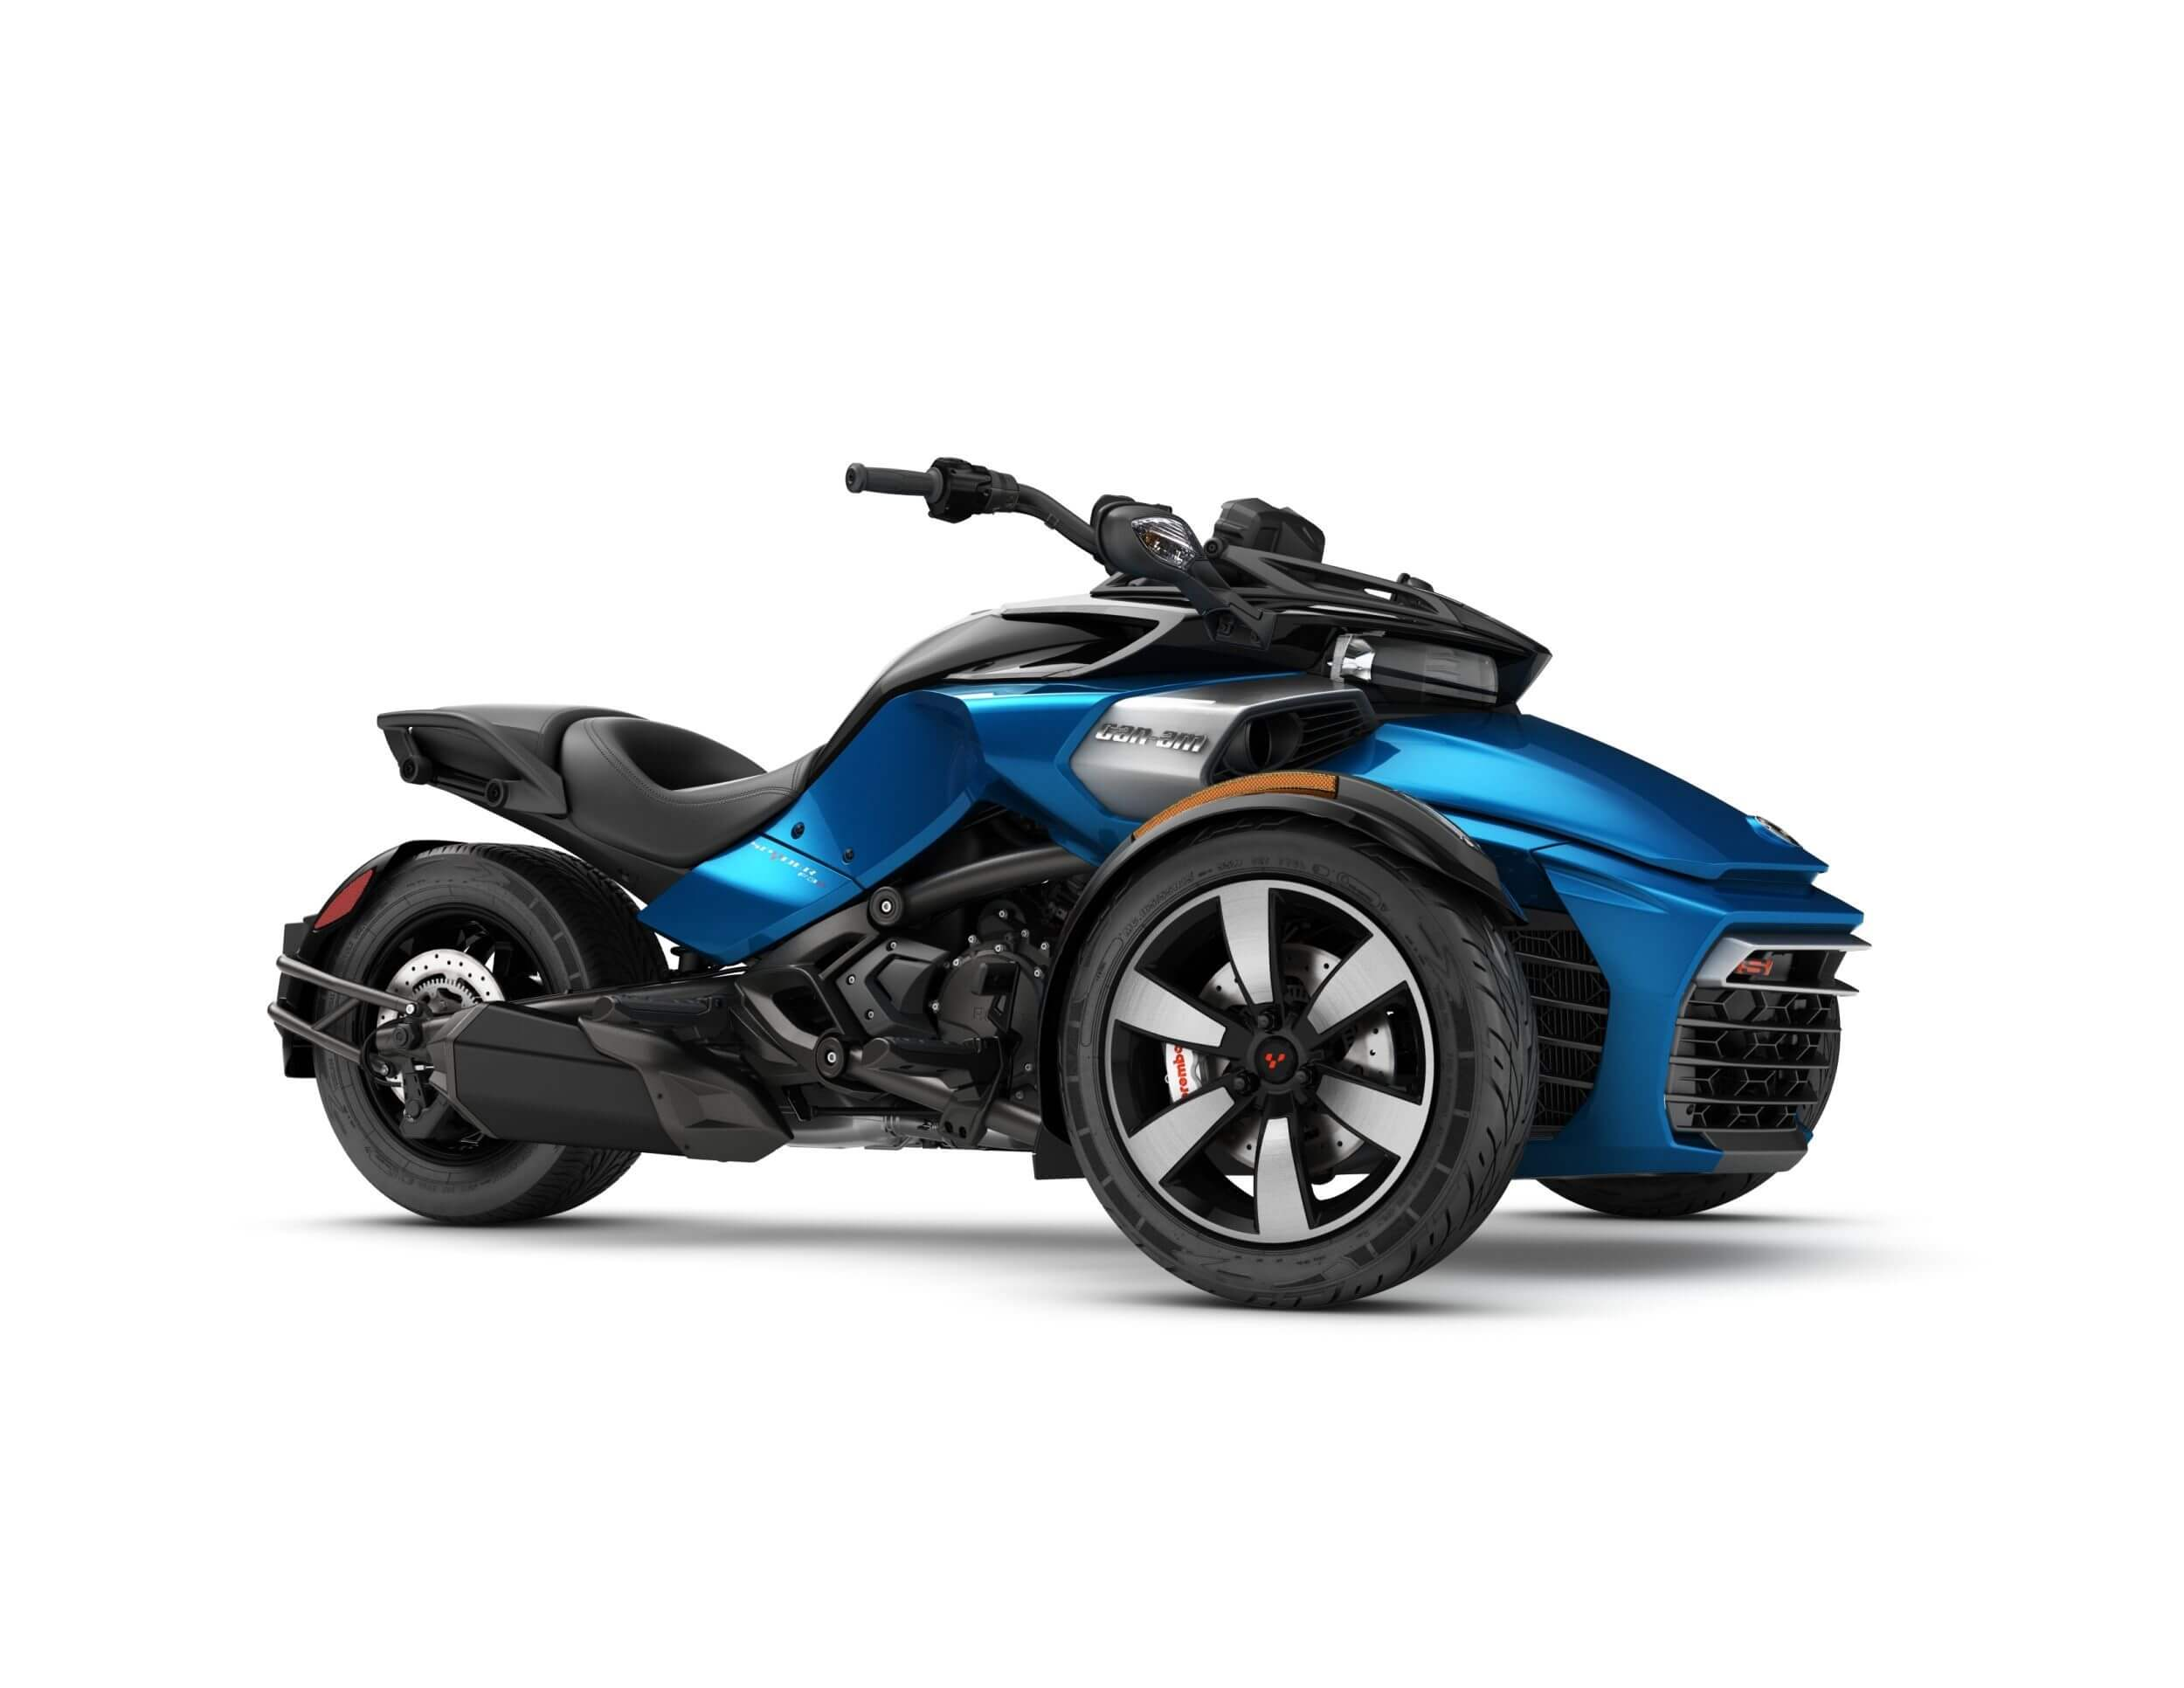 gebrauchte can am spyder f3 s motorr der kaufen. Black Bedroom Furniture Sets. Home Design Ideas